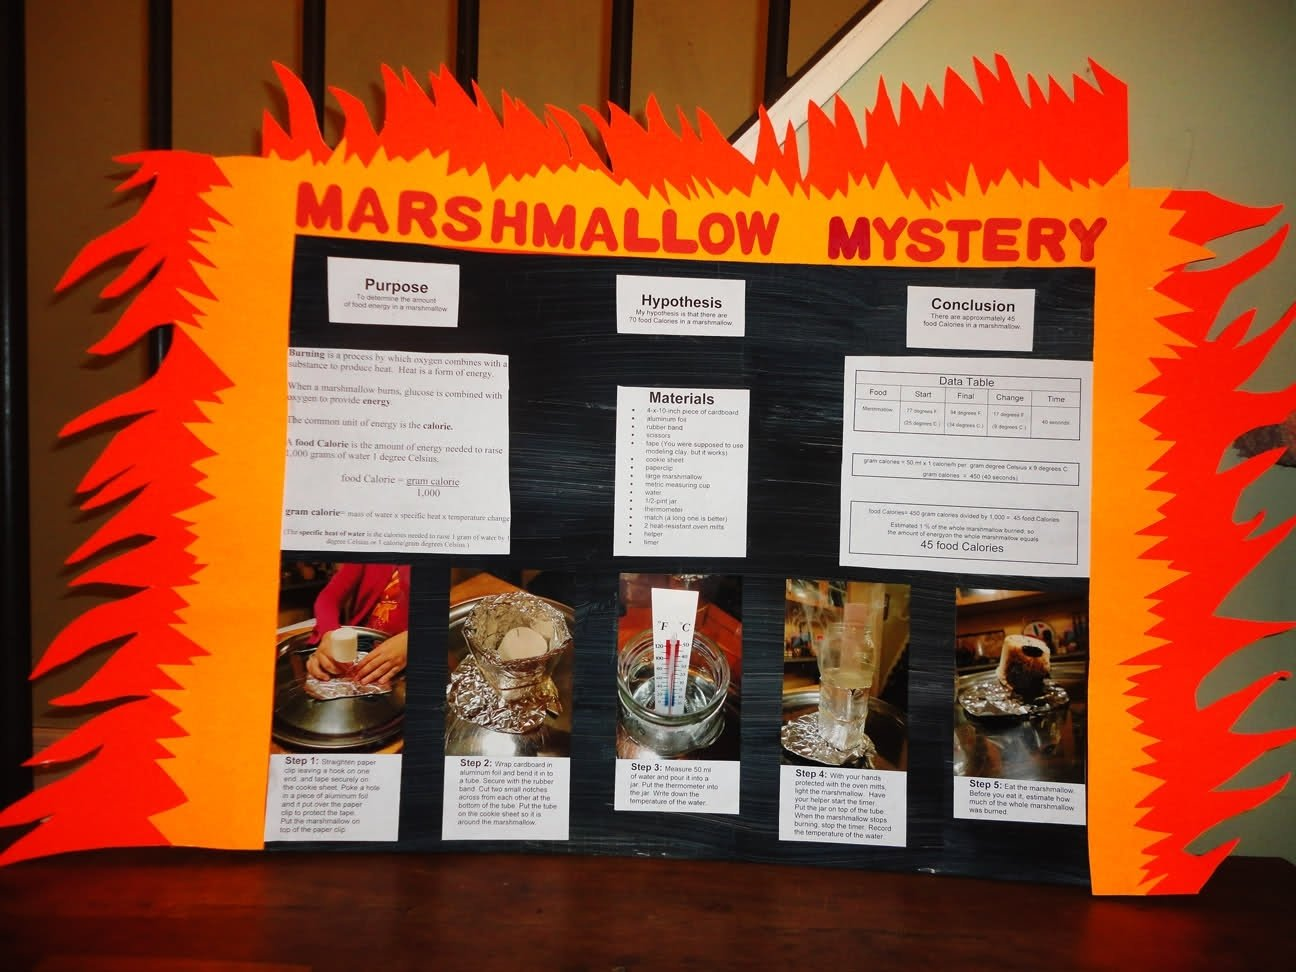 10 Fashionable Science Fair Ideas With Food science project 1 2020